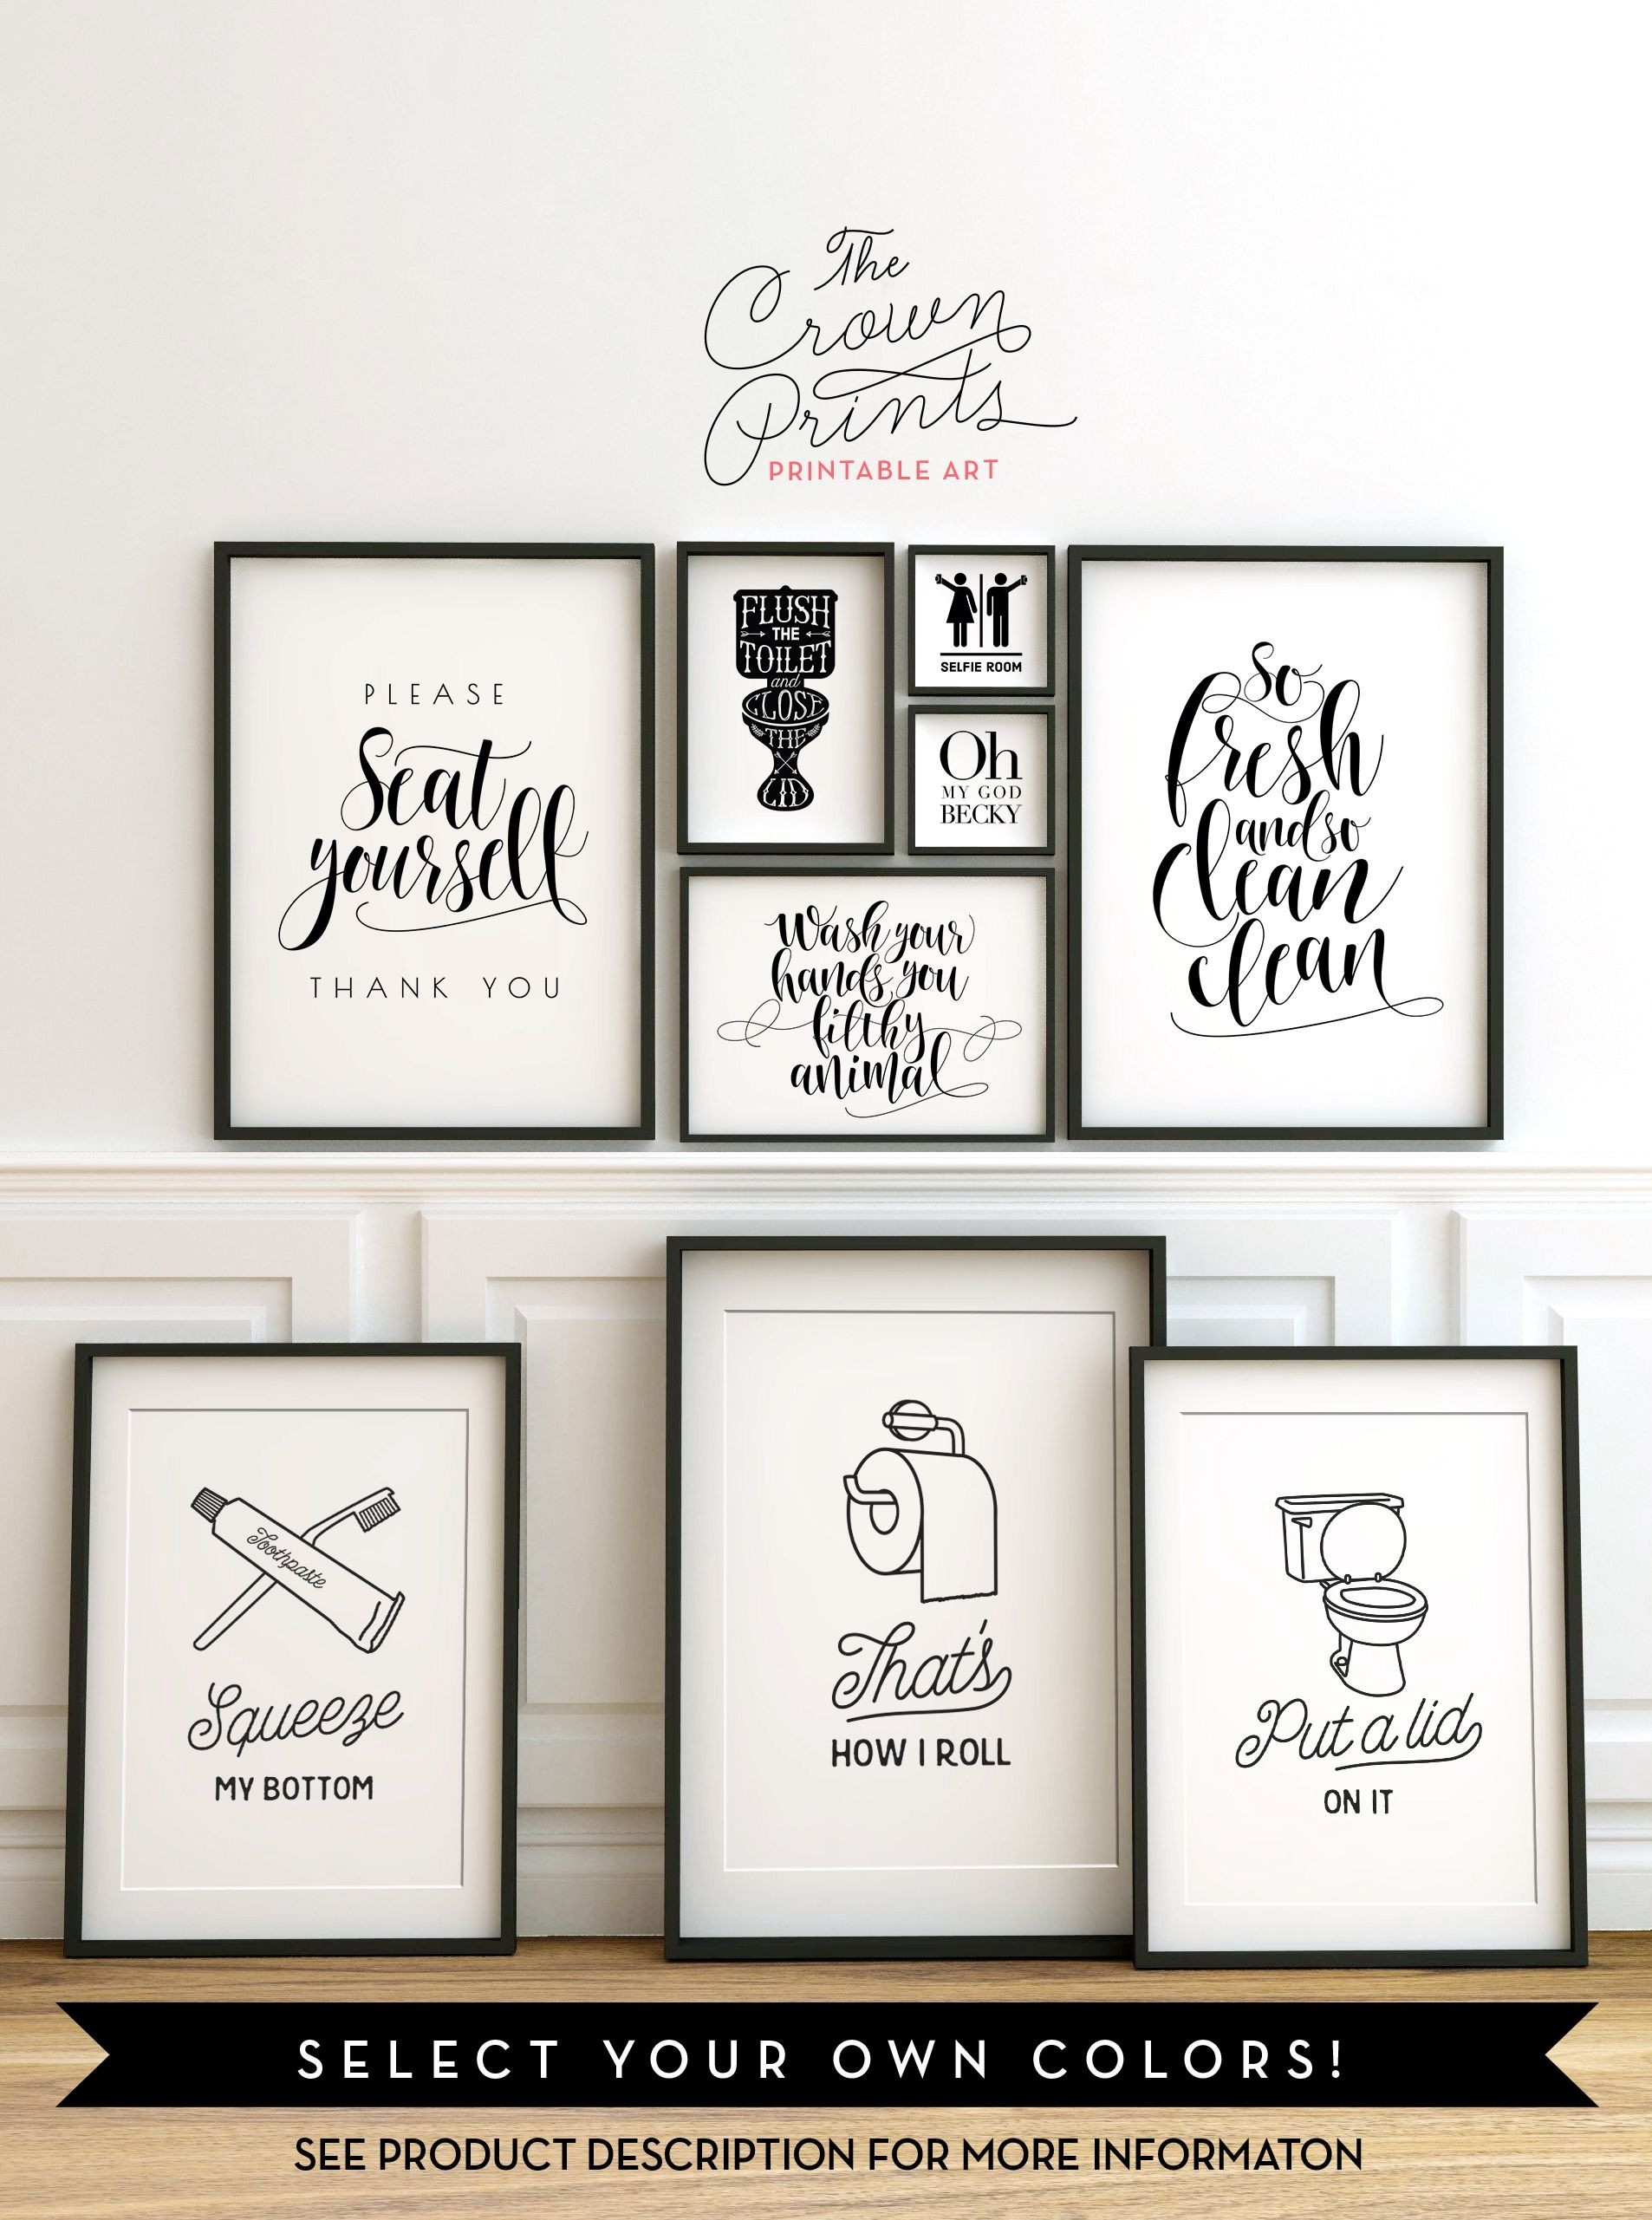 Printable Bathroom Wall Art From The Crown Prints On Etsy Lots Of pertaining to Most Popular Bathroom Rules Wall Art